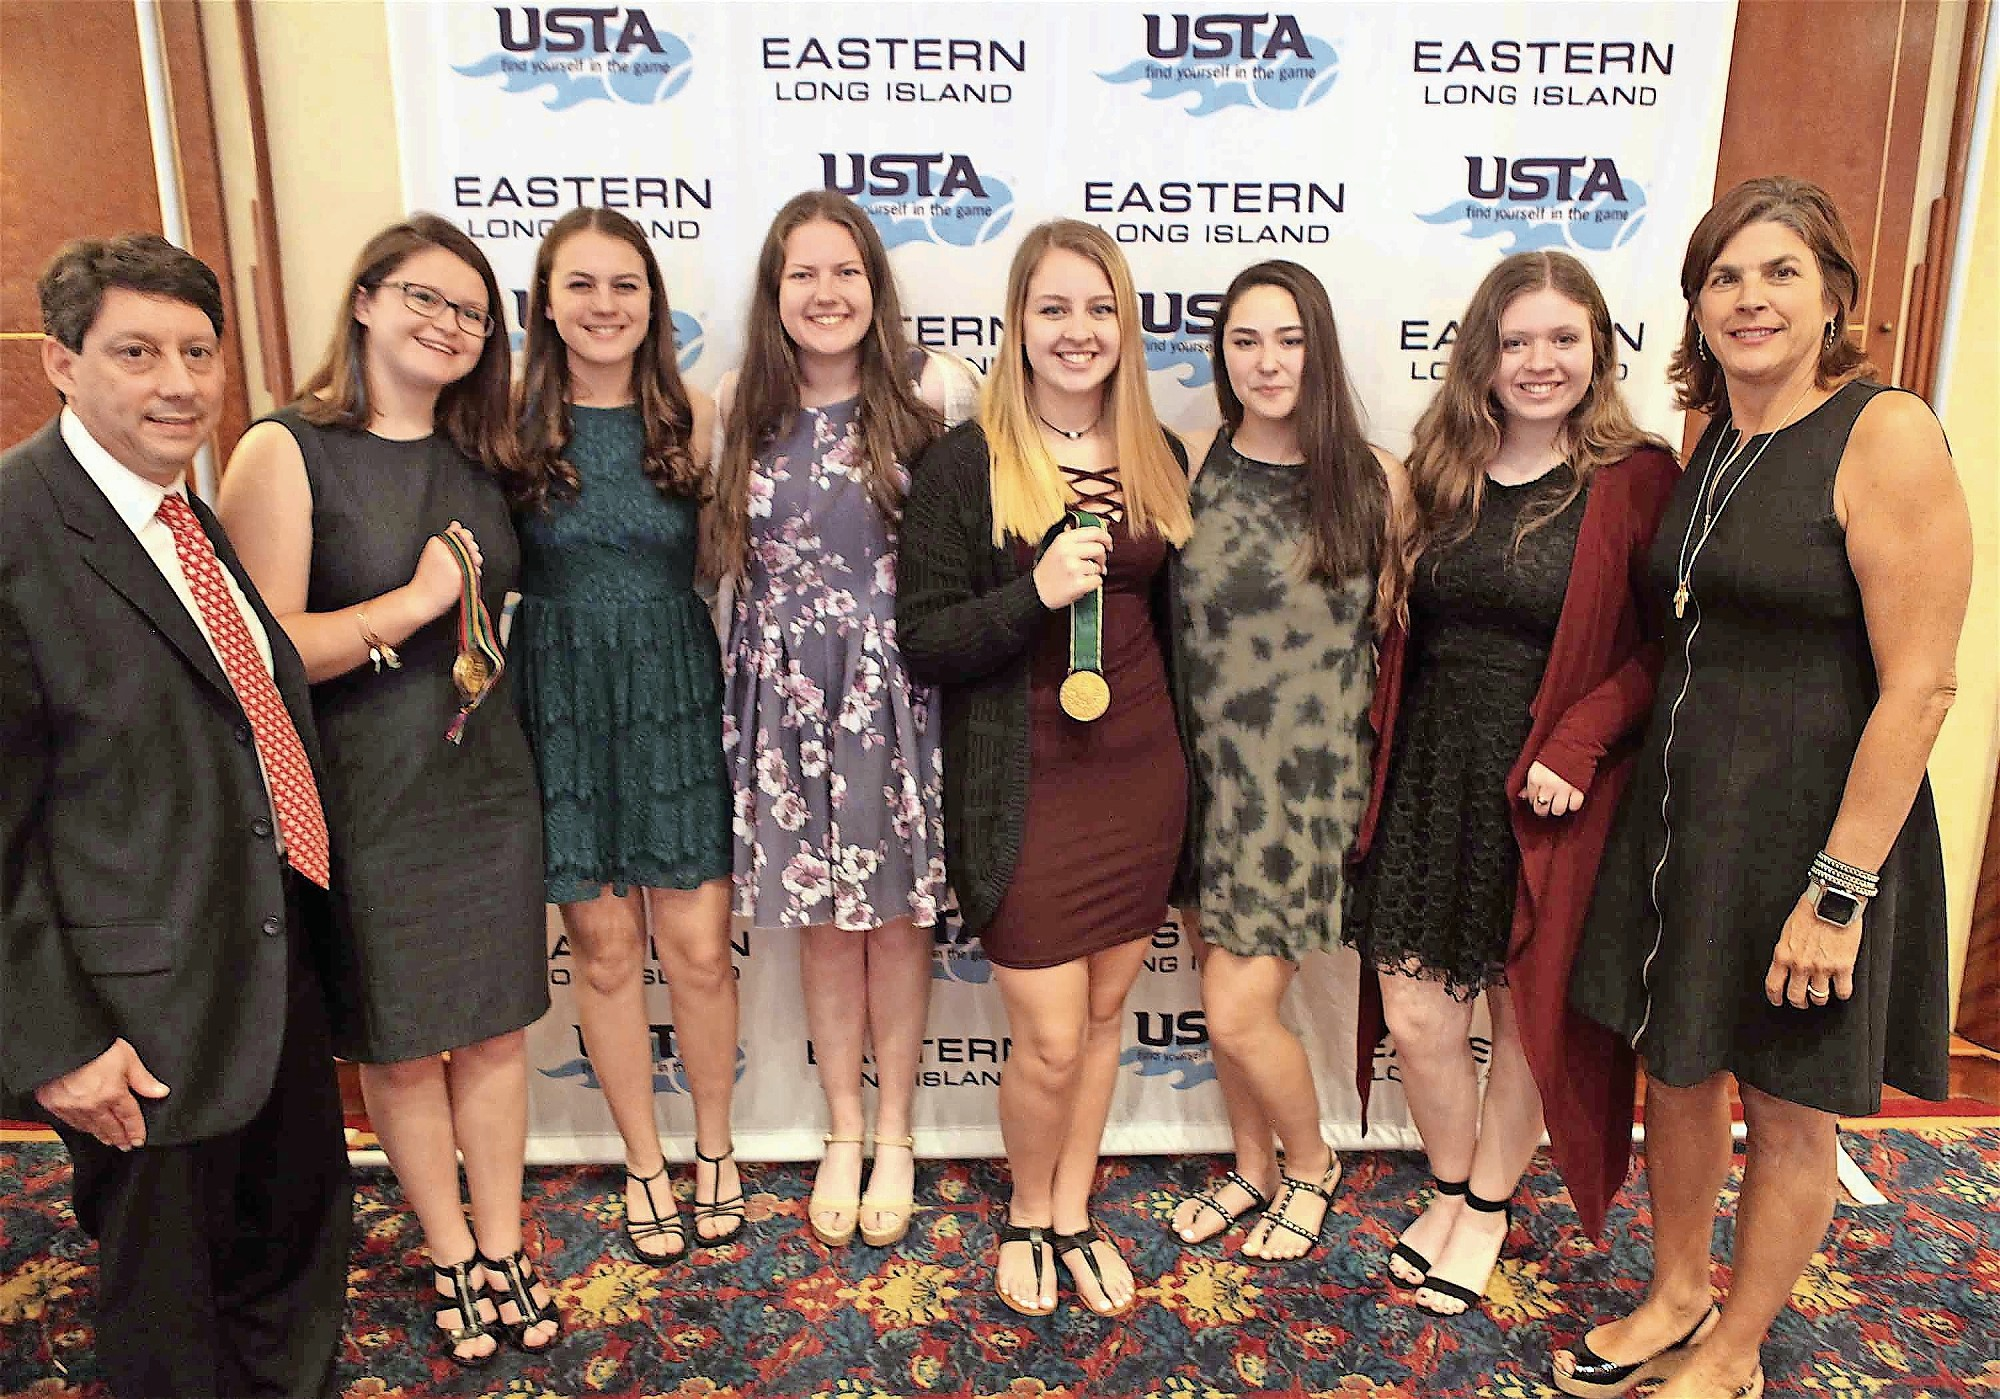 The MacArthur girls' tennis squad was named the High School Team of the Year at the U.S. Tennis Association Long Island Region Awards. Members of the team met with USTA Long Island President Jonathan Klee, far left, and International Tennis Hall of Fame member Gigi Fernandez, right, at the May 3 ceremony.